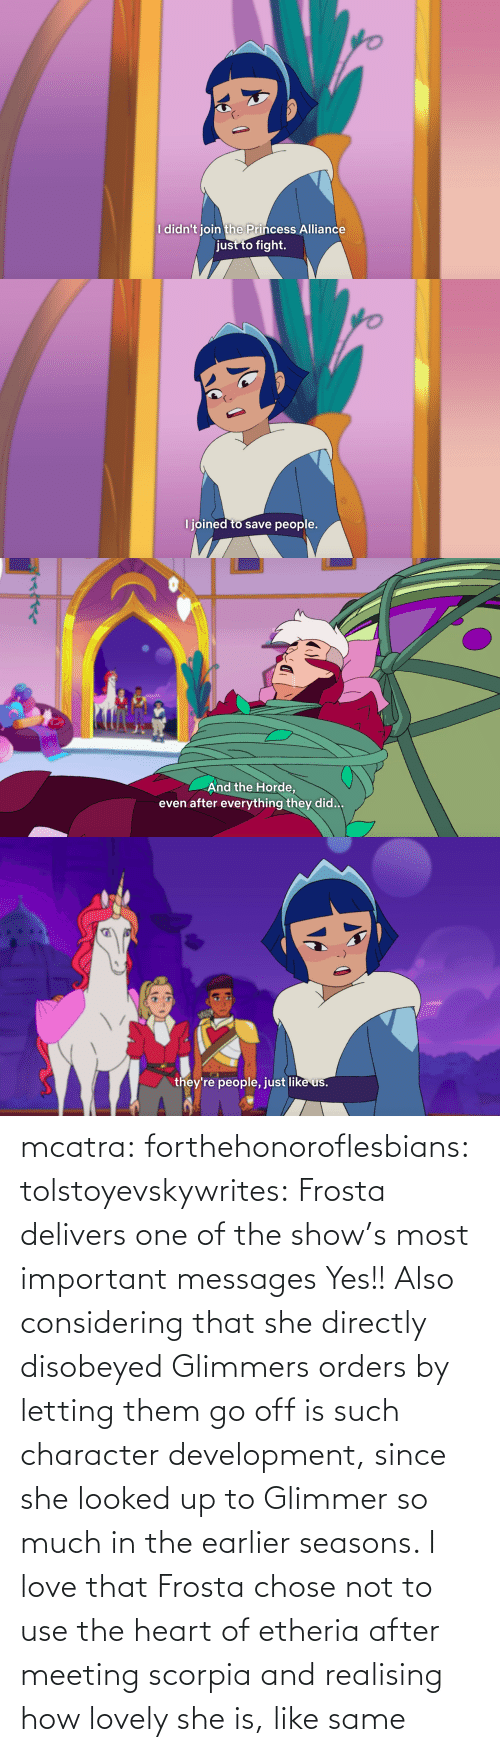 the heart: mcatra: forthehonoroflesbians:   tolstoyevskywrites:  Frosta delivers one of the show's most important messages  Yes!! Also considering that she directly disobeyed Glimmers orders by letting them go off is such character development, since she looked up to Glimmer so much in the earlier seasons.    I love that Frosta chose not to use the heart of etheria after meeting scorpia and realising how lovely she is, like same